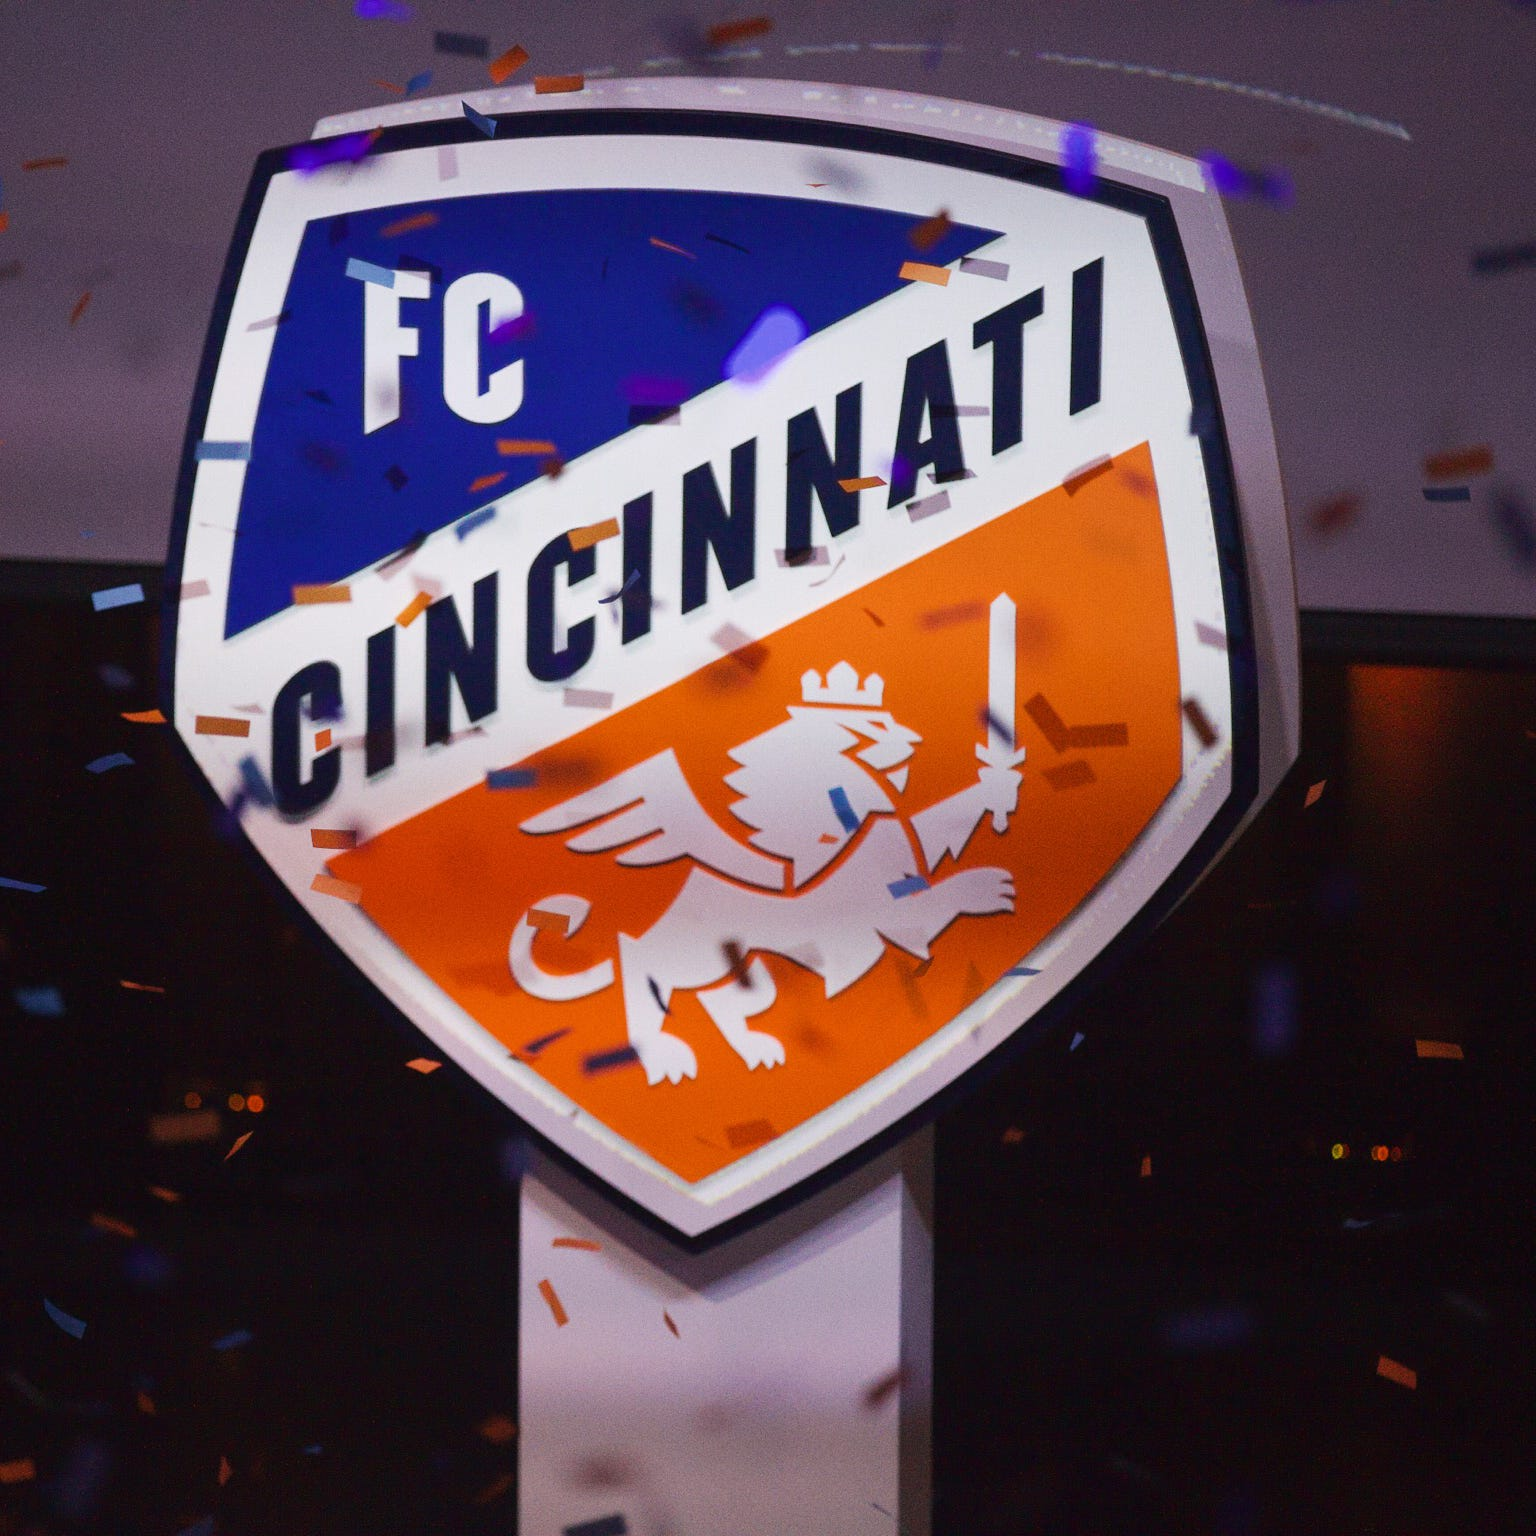 It's here: FC Cincinnati unveils new marks, crest ahead of 2019 MLS season